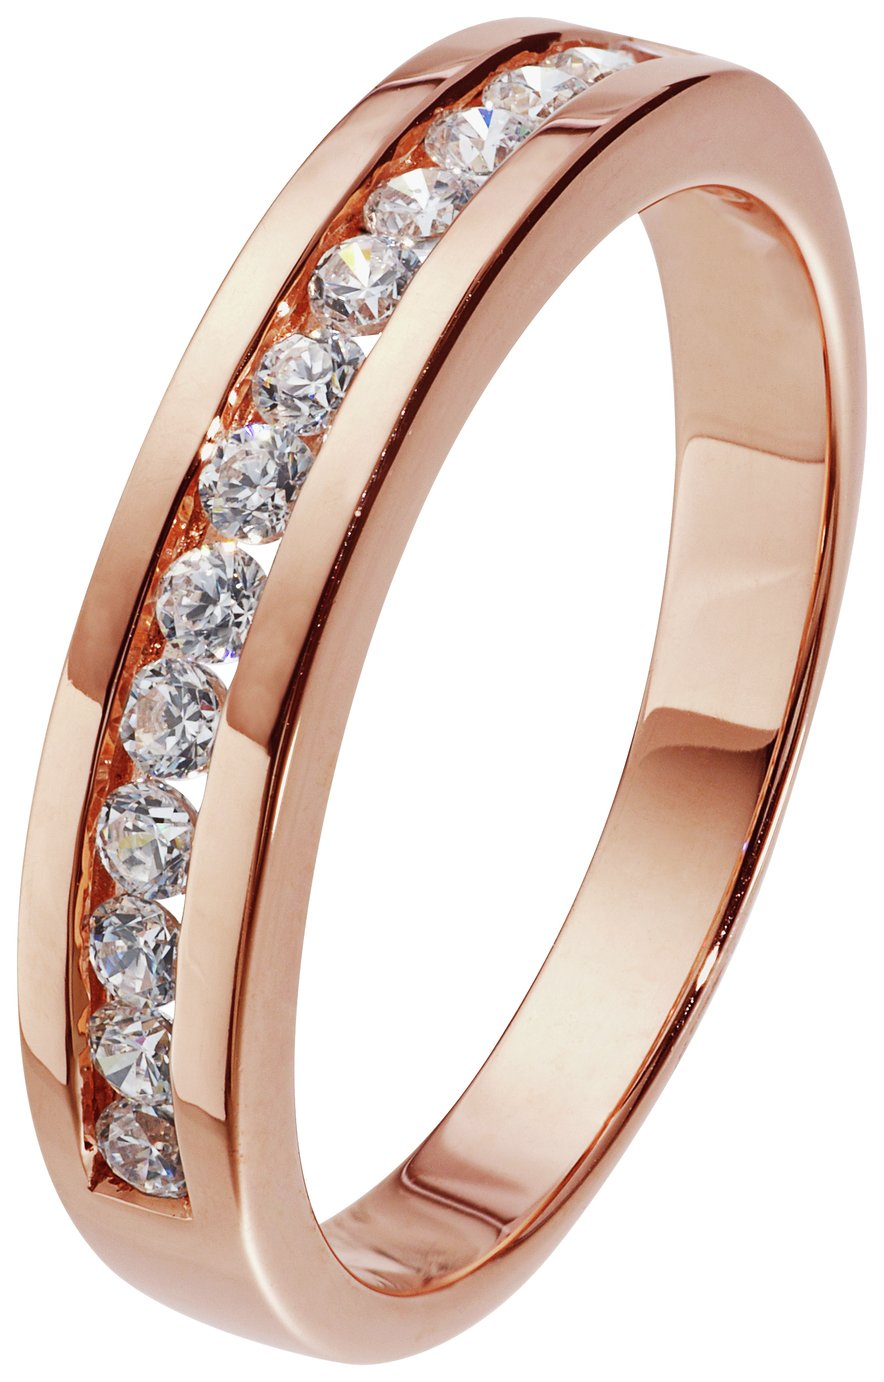 Revere 18ct Rose Gold Plated Silver CZ Eternity Ring